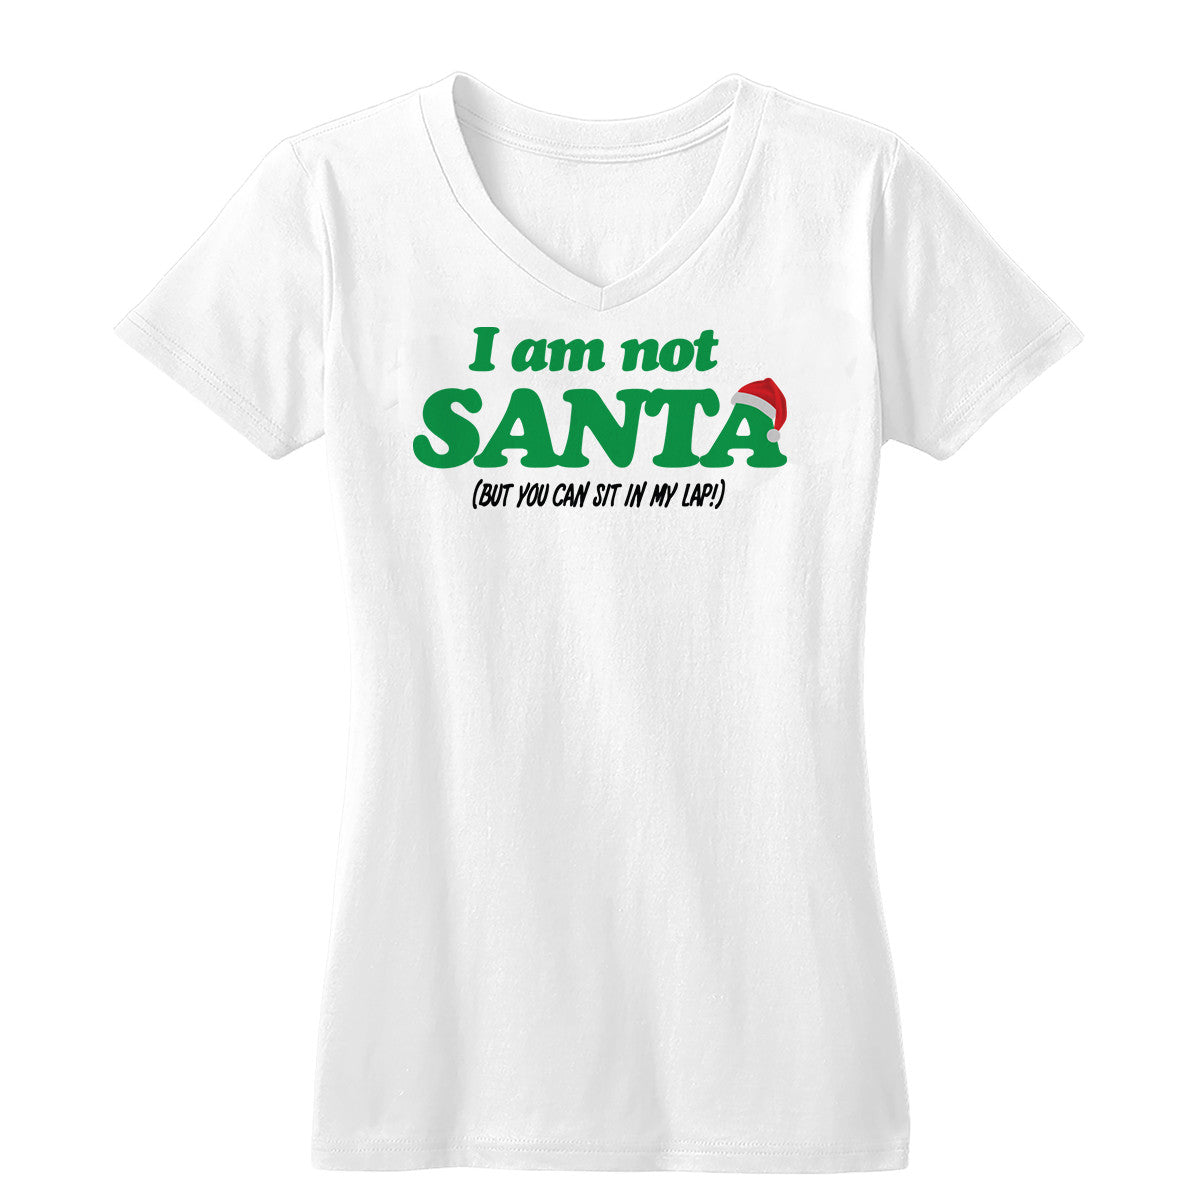 I am not Santa Women's Tee